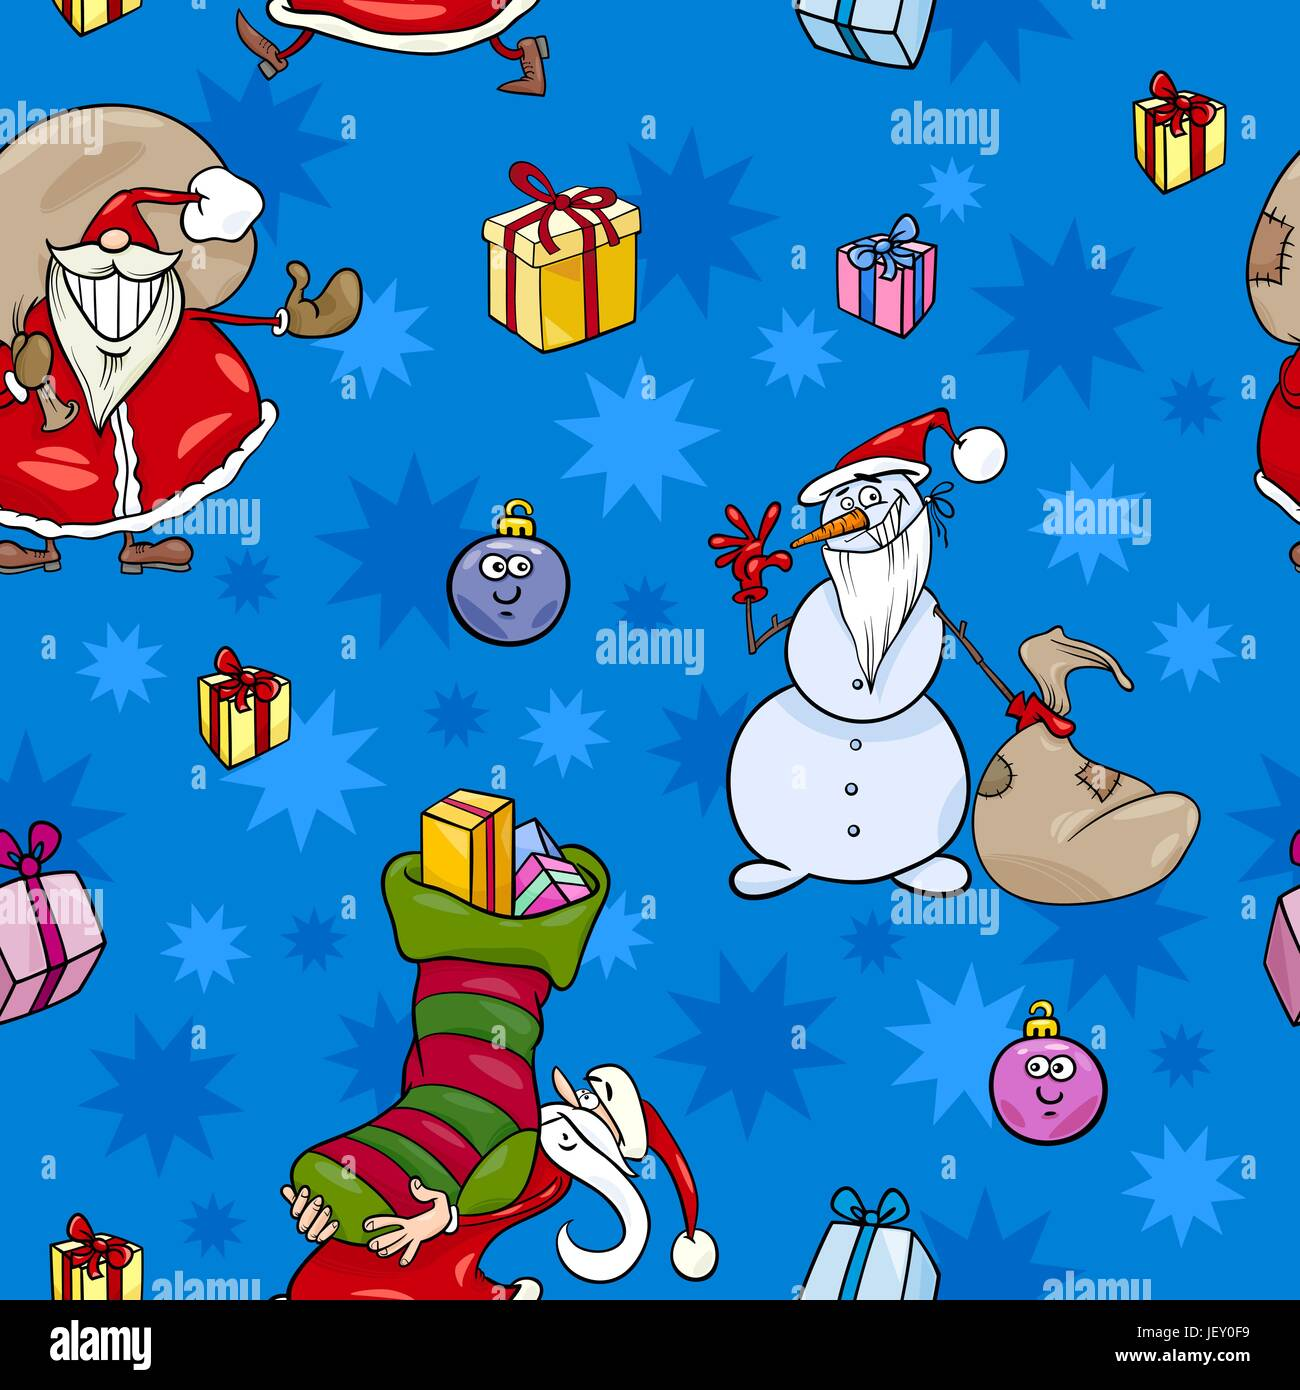 Illustration Christmas Wallpaper Pattern Seamless